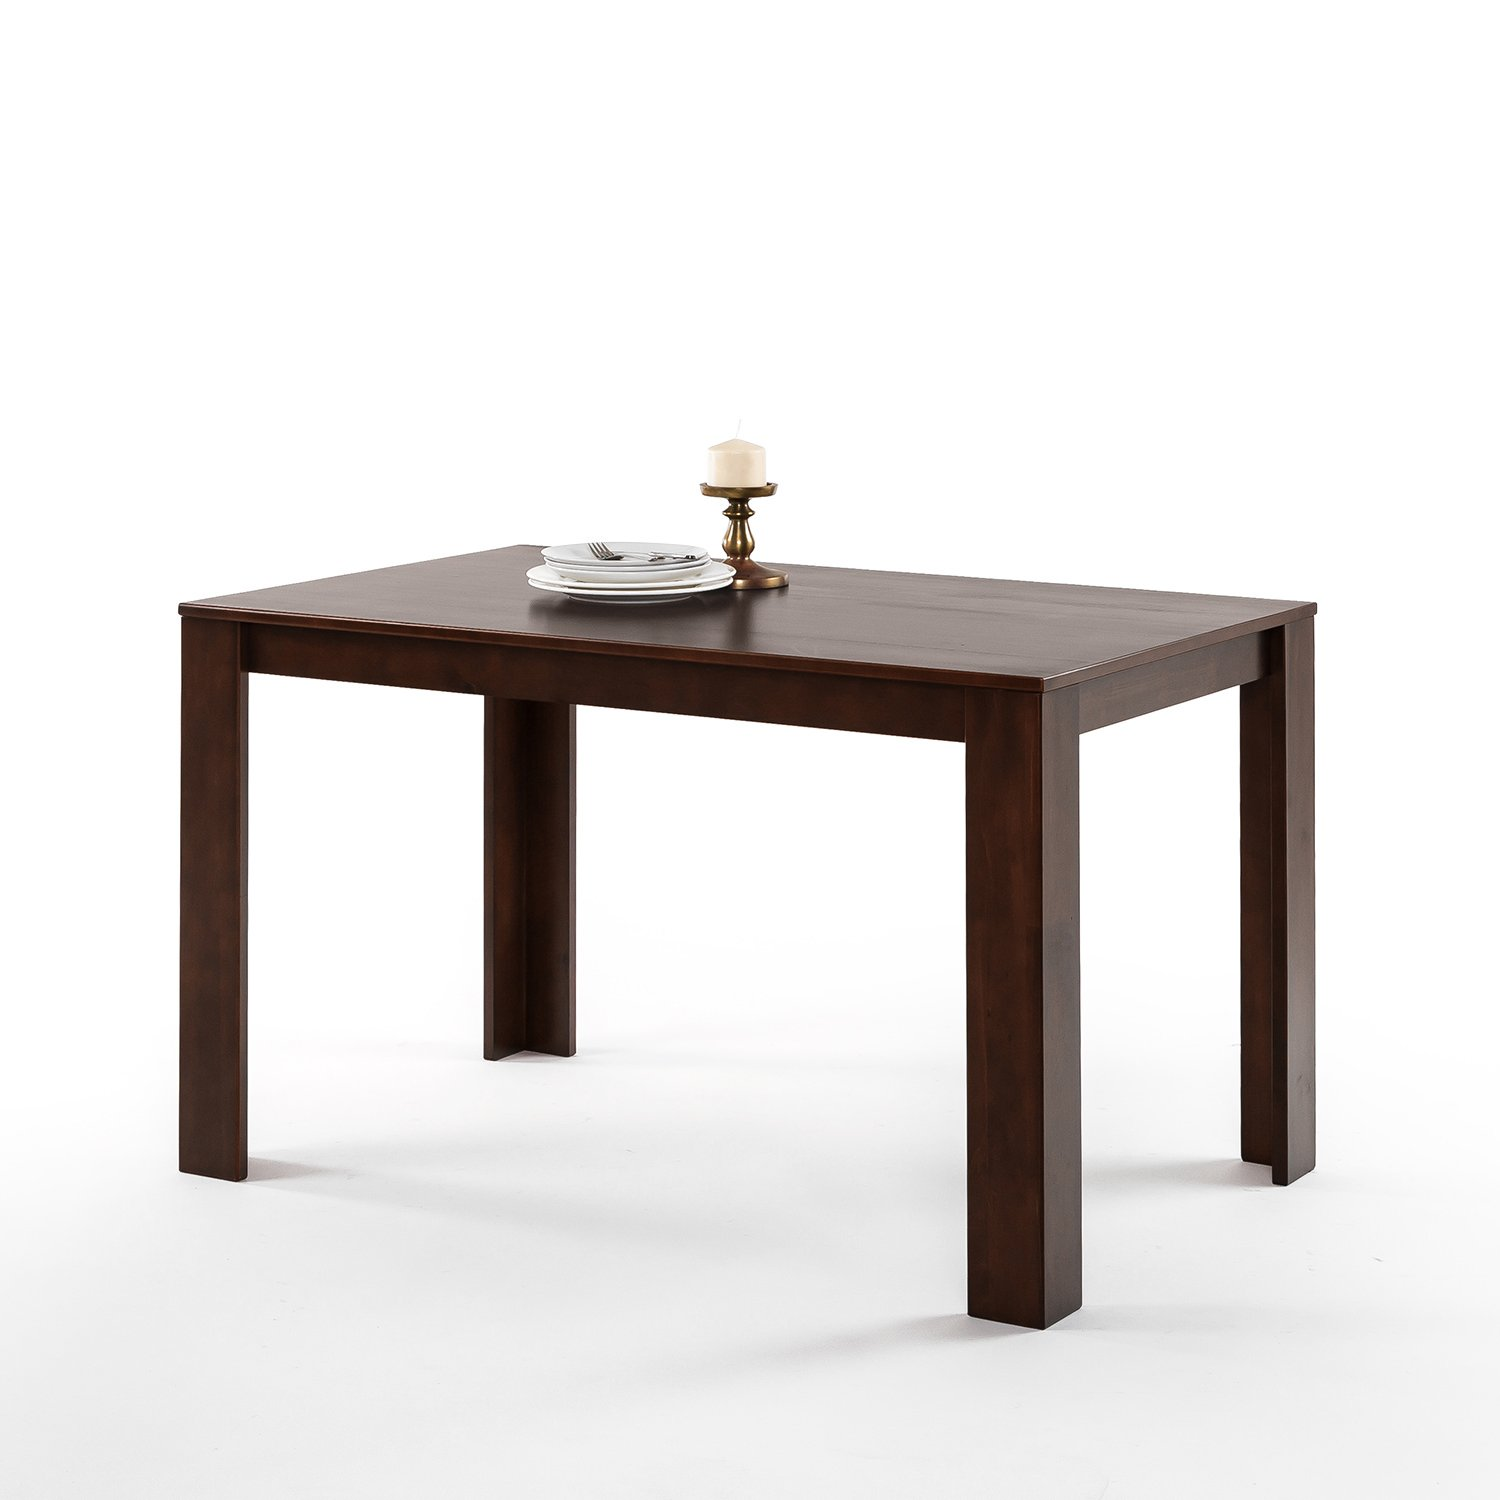 Zinus Mission Style Wood Dining Table / TableOnly